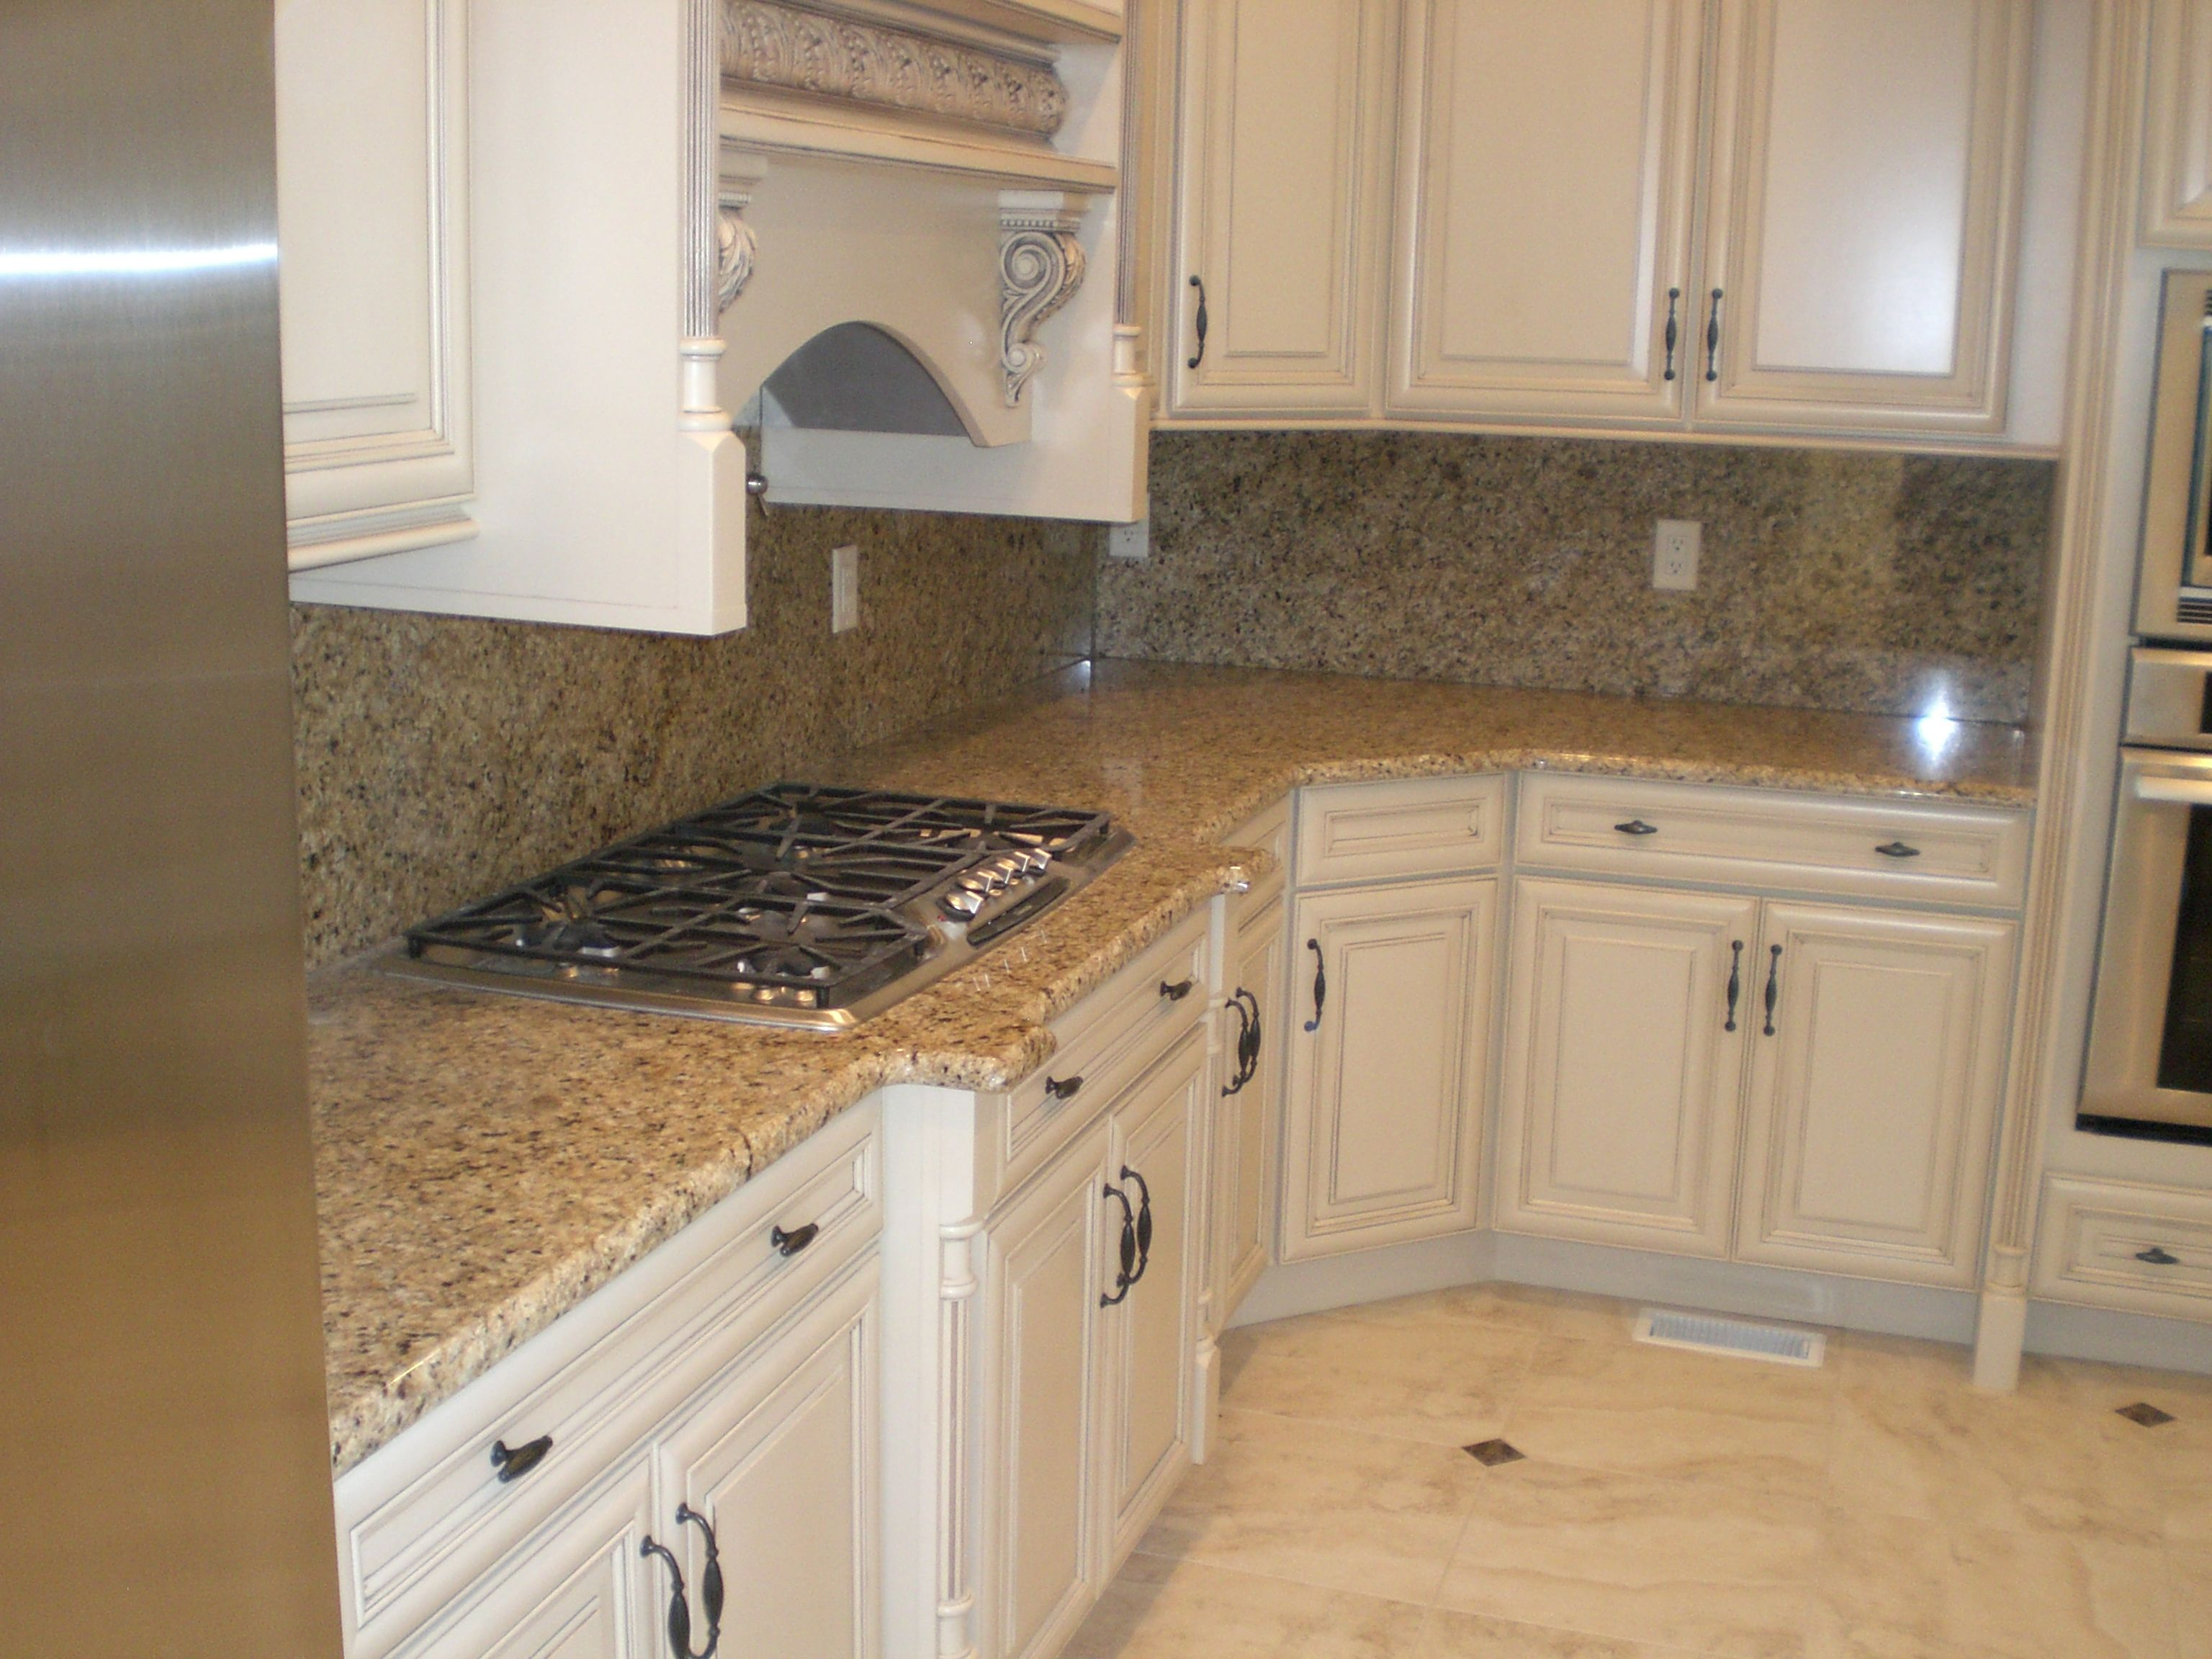 Kashmir Gold Granite Kitchen Cabinet Color Differences And Love The Color Of The Counter Tops